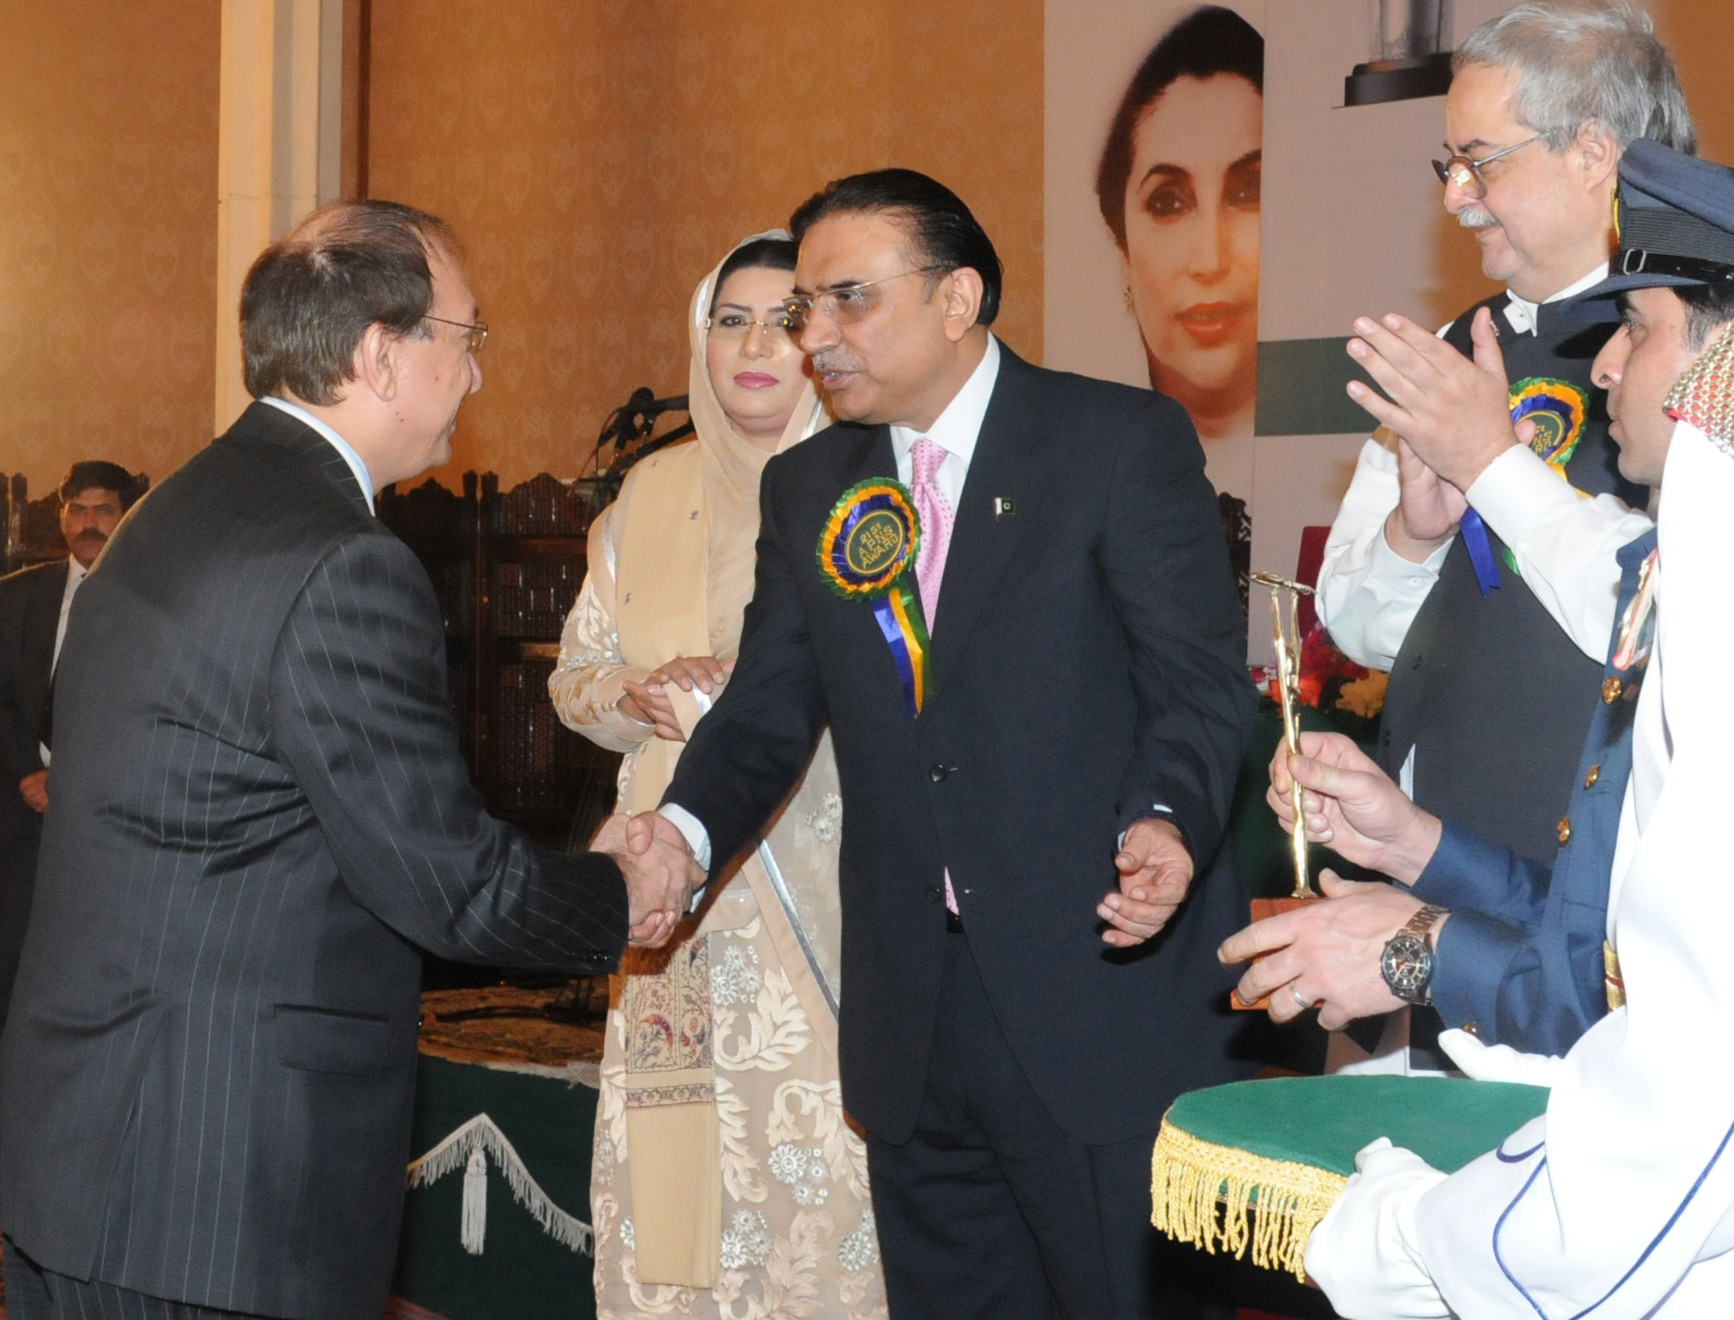 Naveed Saeed, SEVP, PTCL receiving Corporate Communication & PR Excellence Award from President of Pakistan Asif Ali Zardari during 21st APNS Advertising Awards ceremony